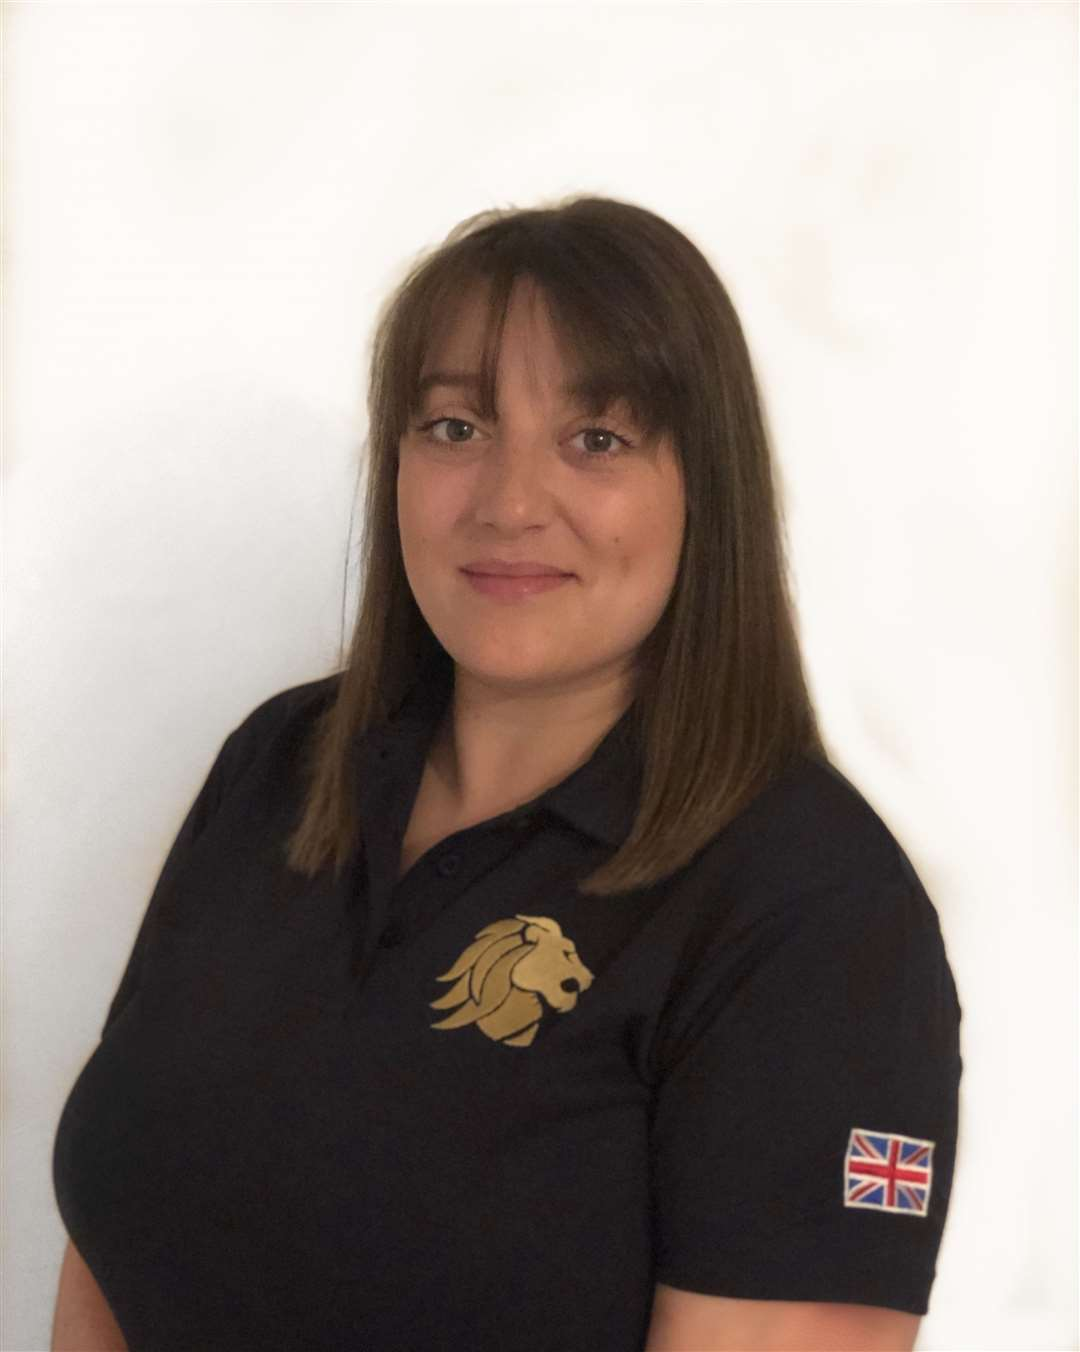 Victoria Ware, GB American Football player from Walsham-le-Willows (14496782)